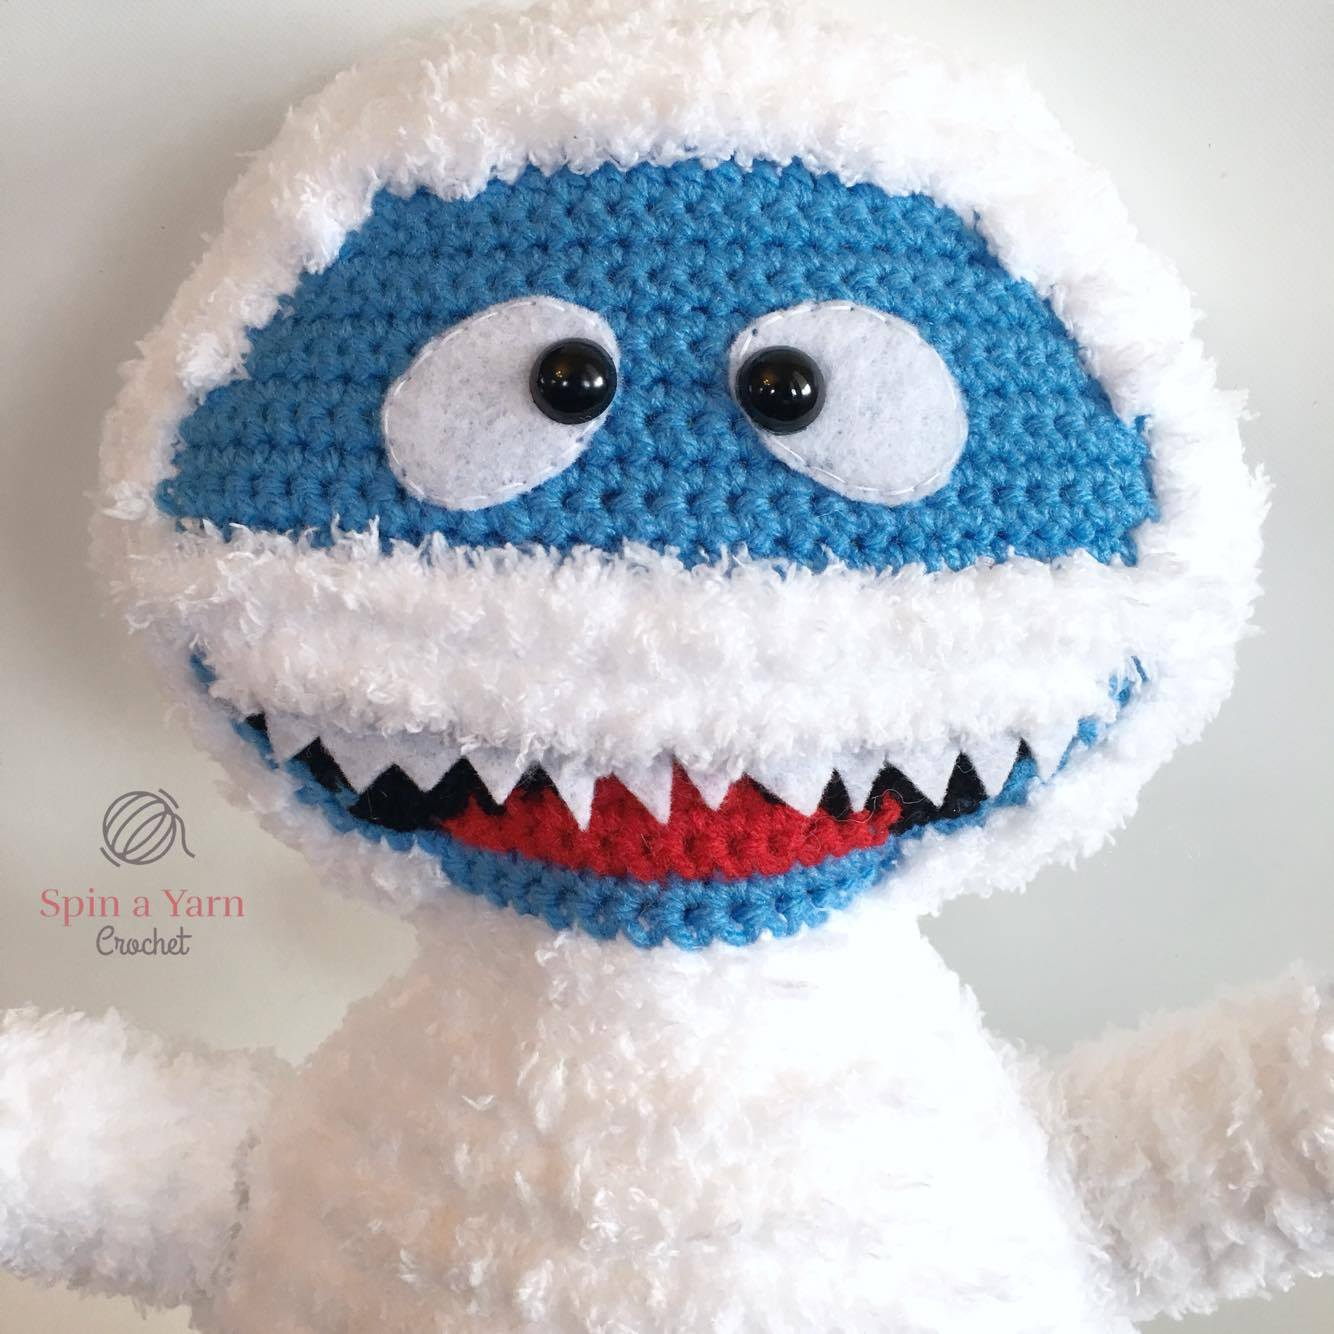 Bumble The Abominable Snowman Free Crochet Pattern Spin A Yarn Diagram Patterns Crocheted Love Copy Face